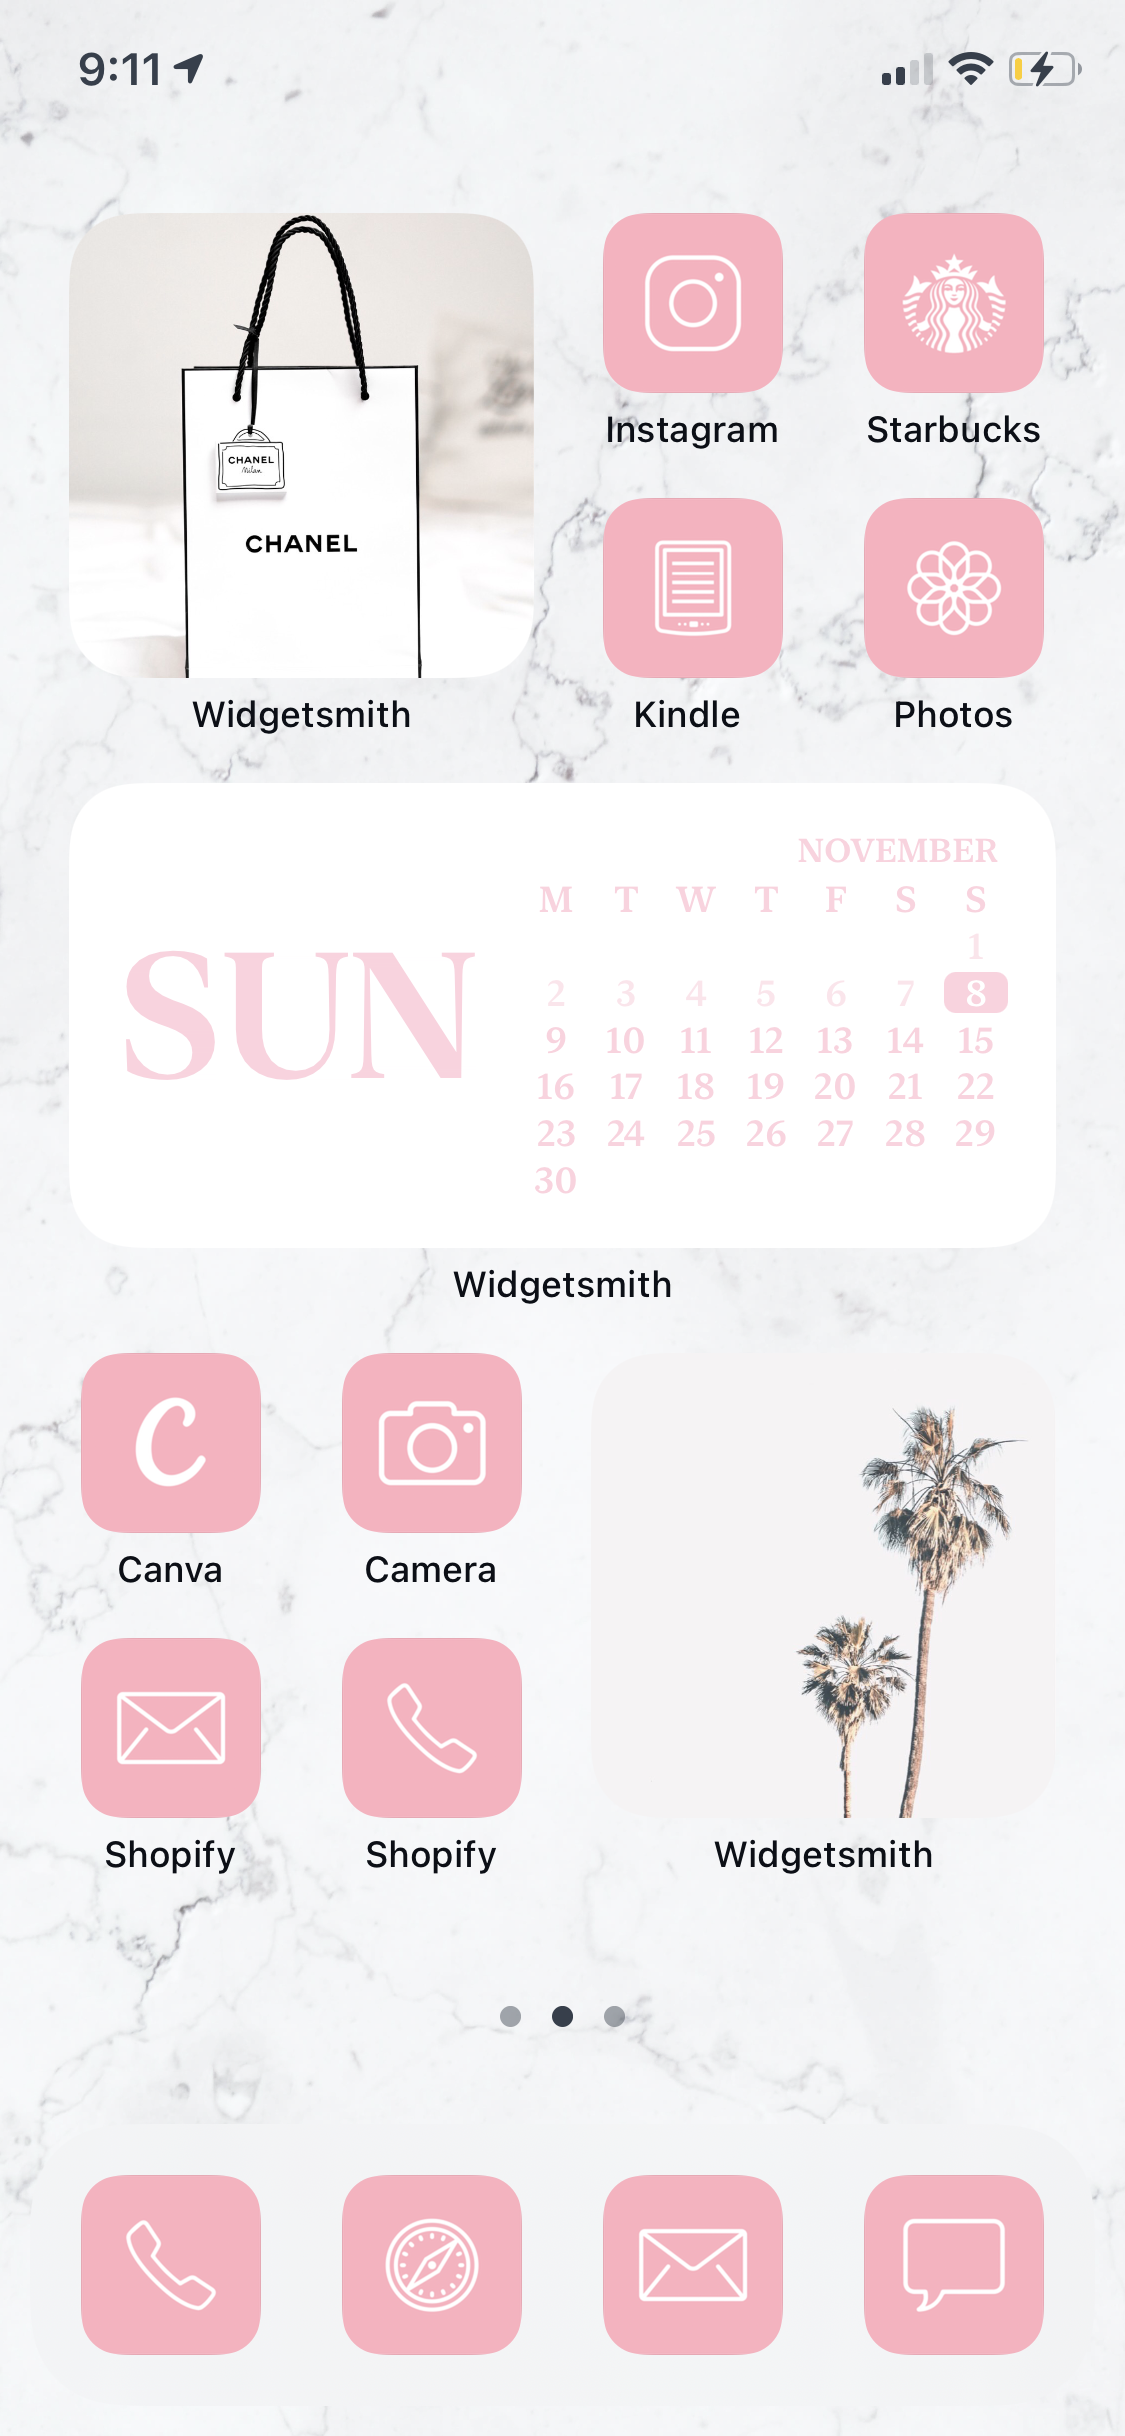 Ios14 Icons Iphone App Bundle 62 App Pack 3 Colors Iphone Etsy In 2021 Iphone Wallpaper App App Background Pink Iphone